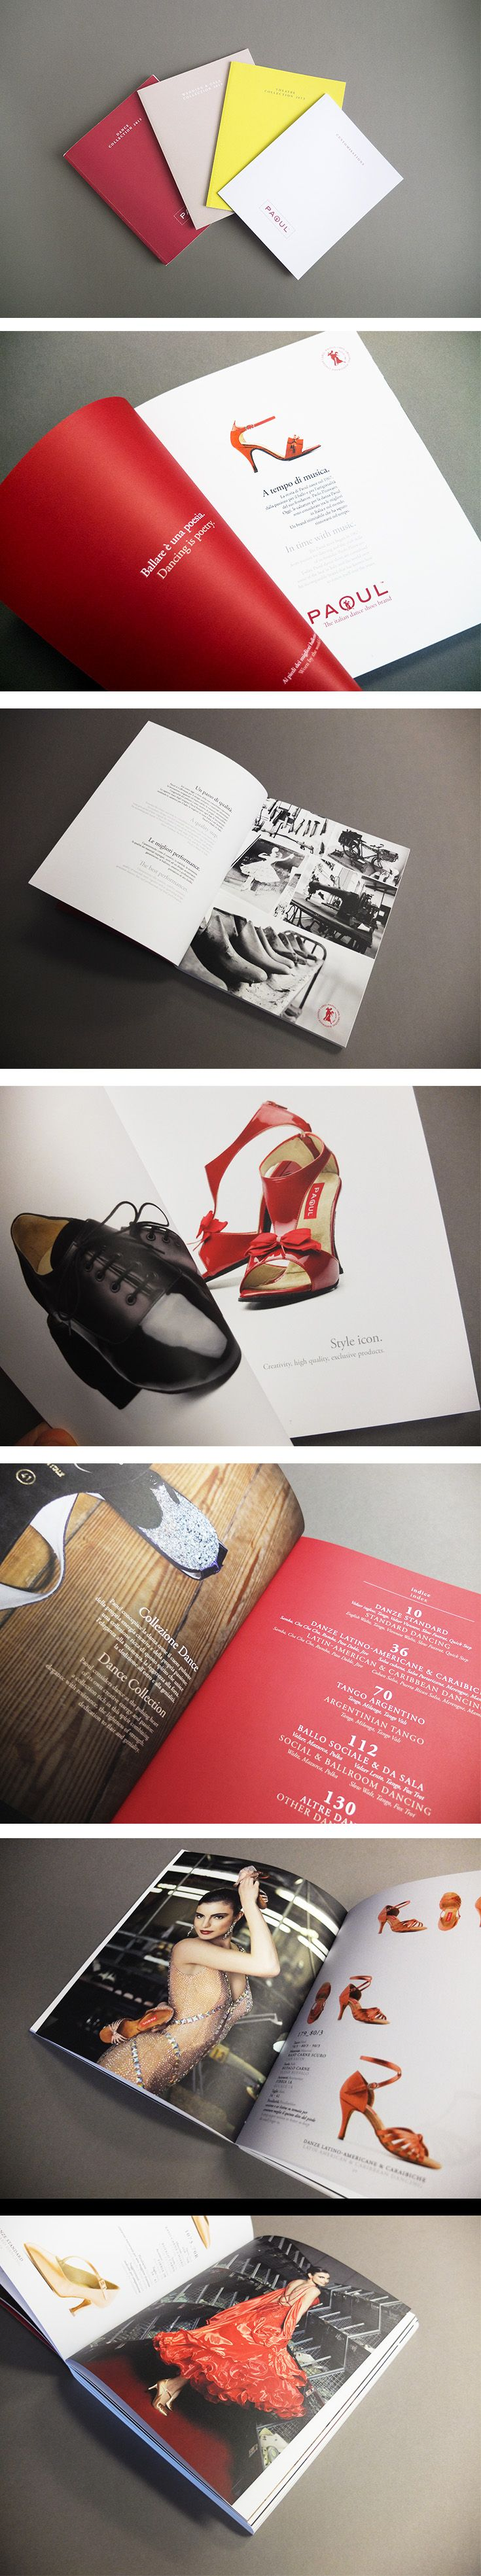 Cataloghi Paoul, un progetto #effADV - Paoul #printing, effADV project - #catalogue  #brochure #shoes #print